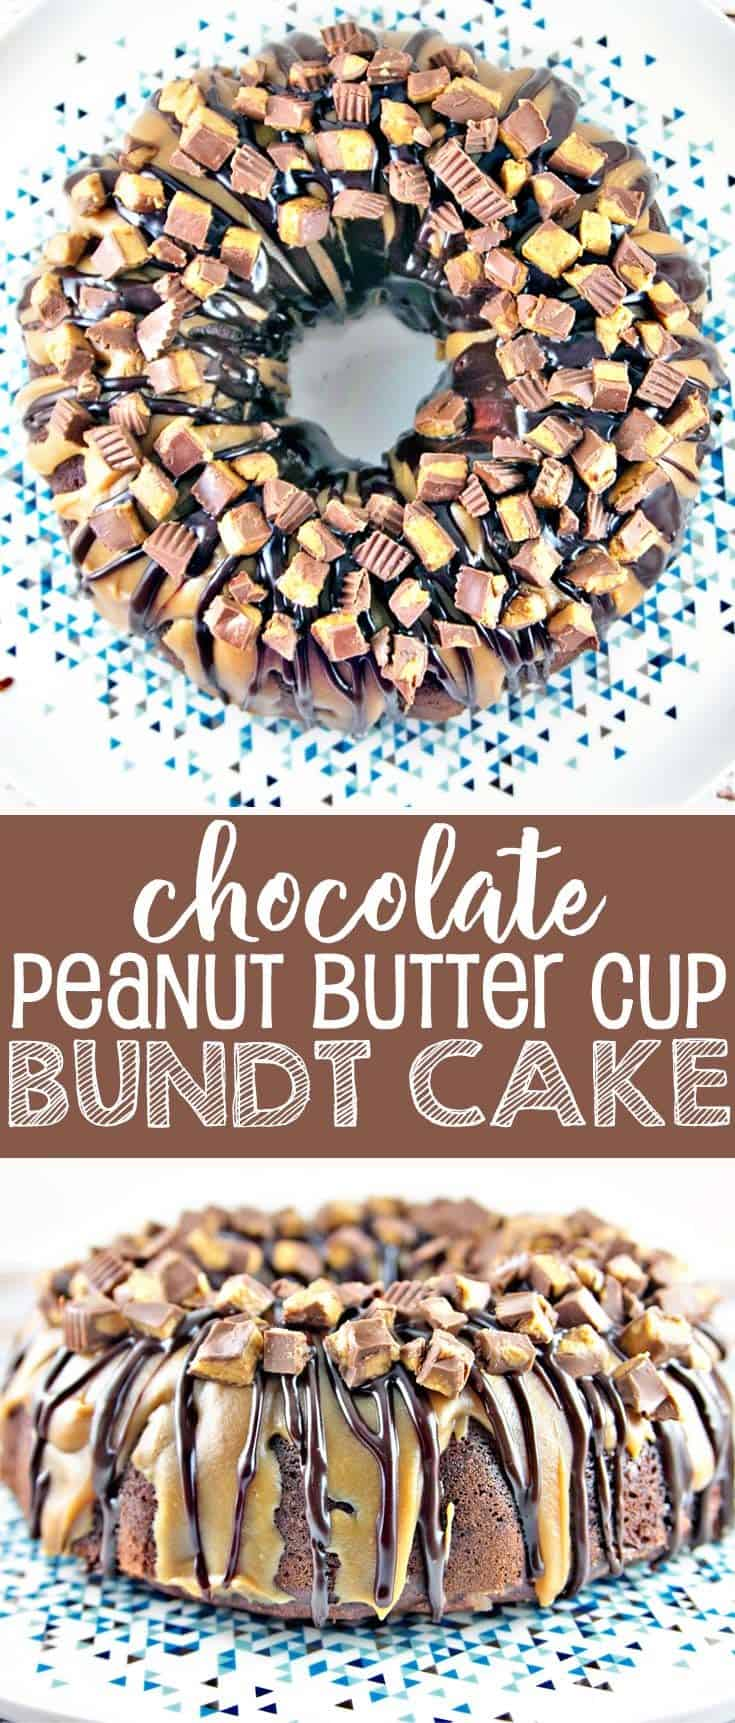 Chocolate Peanut Butter Cup Bundt Cake: light and fluffy chocolate cake made from scratch covered in peanut butter and chocolate ganache, topped with chopped peanut butter cups. #bunsenburnerbakery #cake #chocolatecake #bundtcake #peanutbuttercup #chocolatepeanutbutter